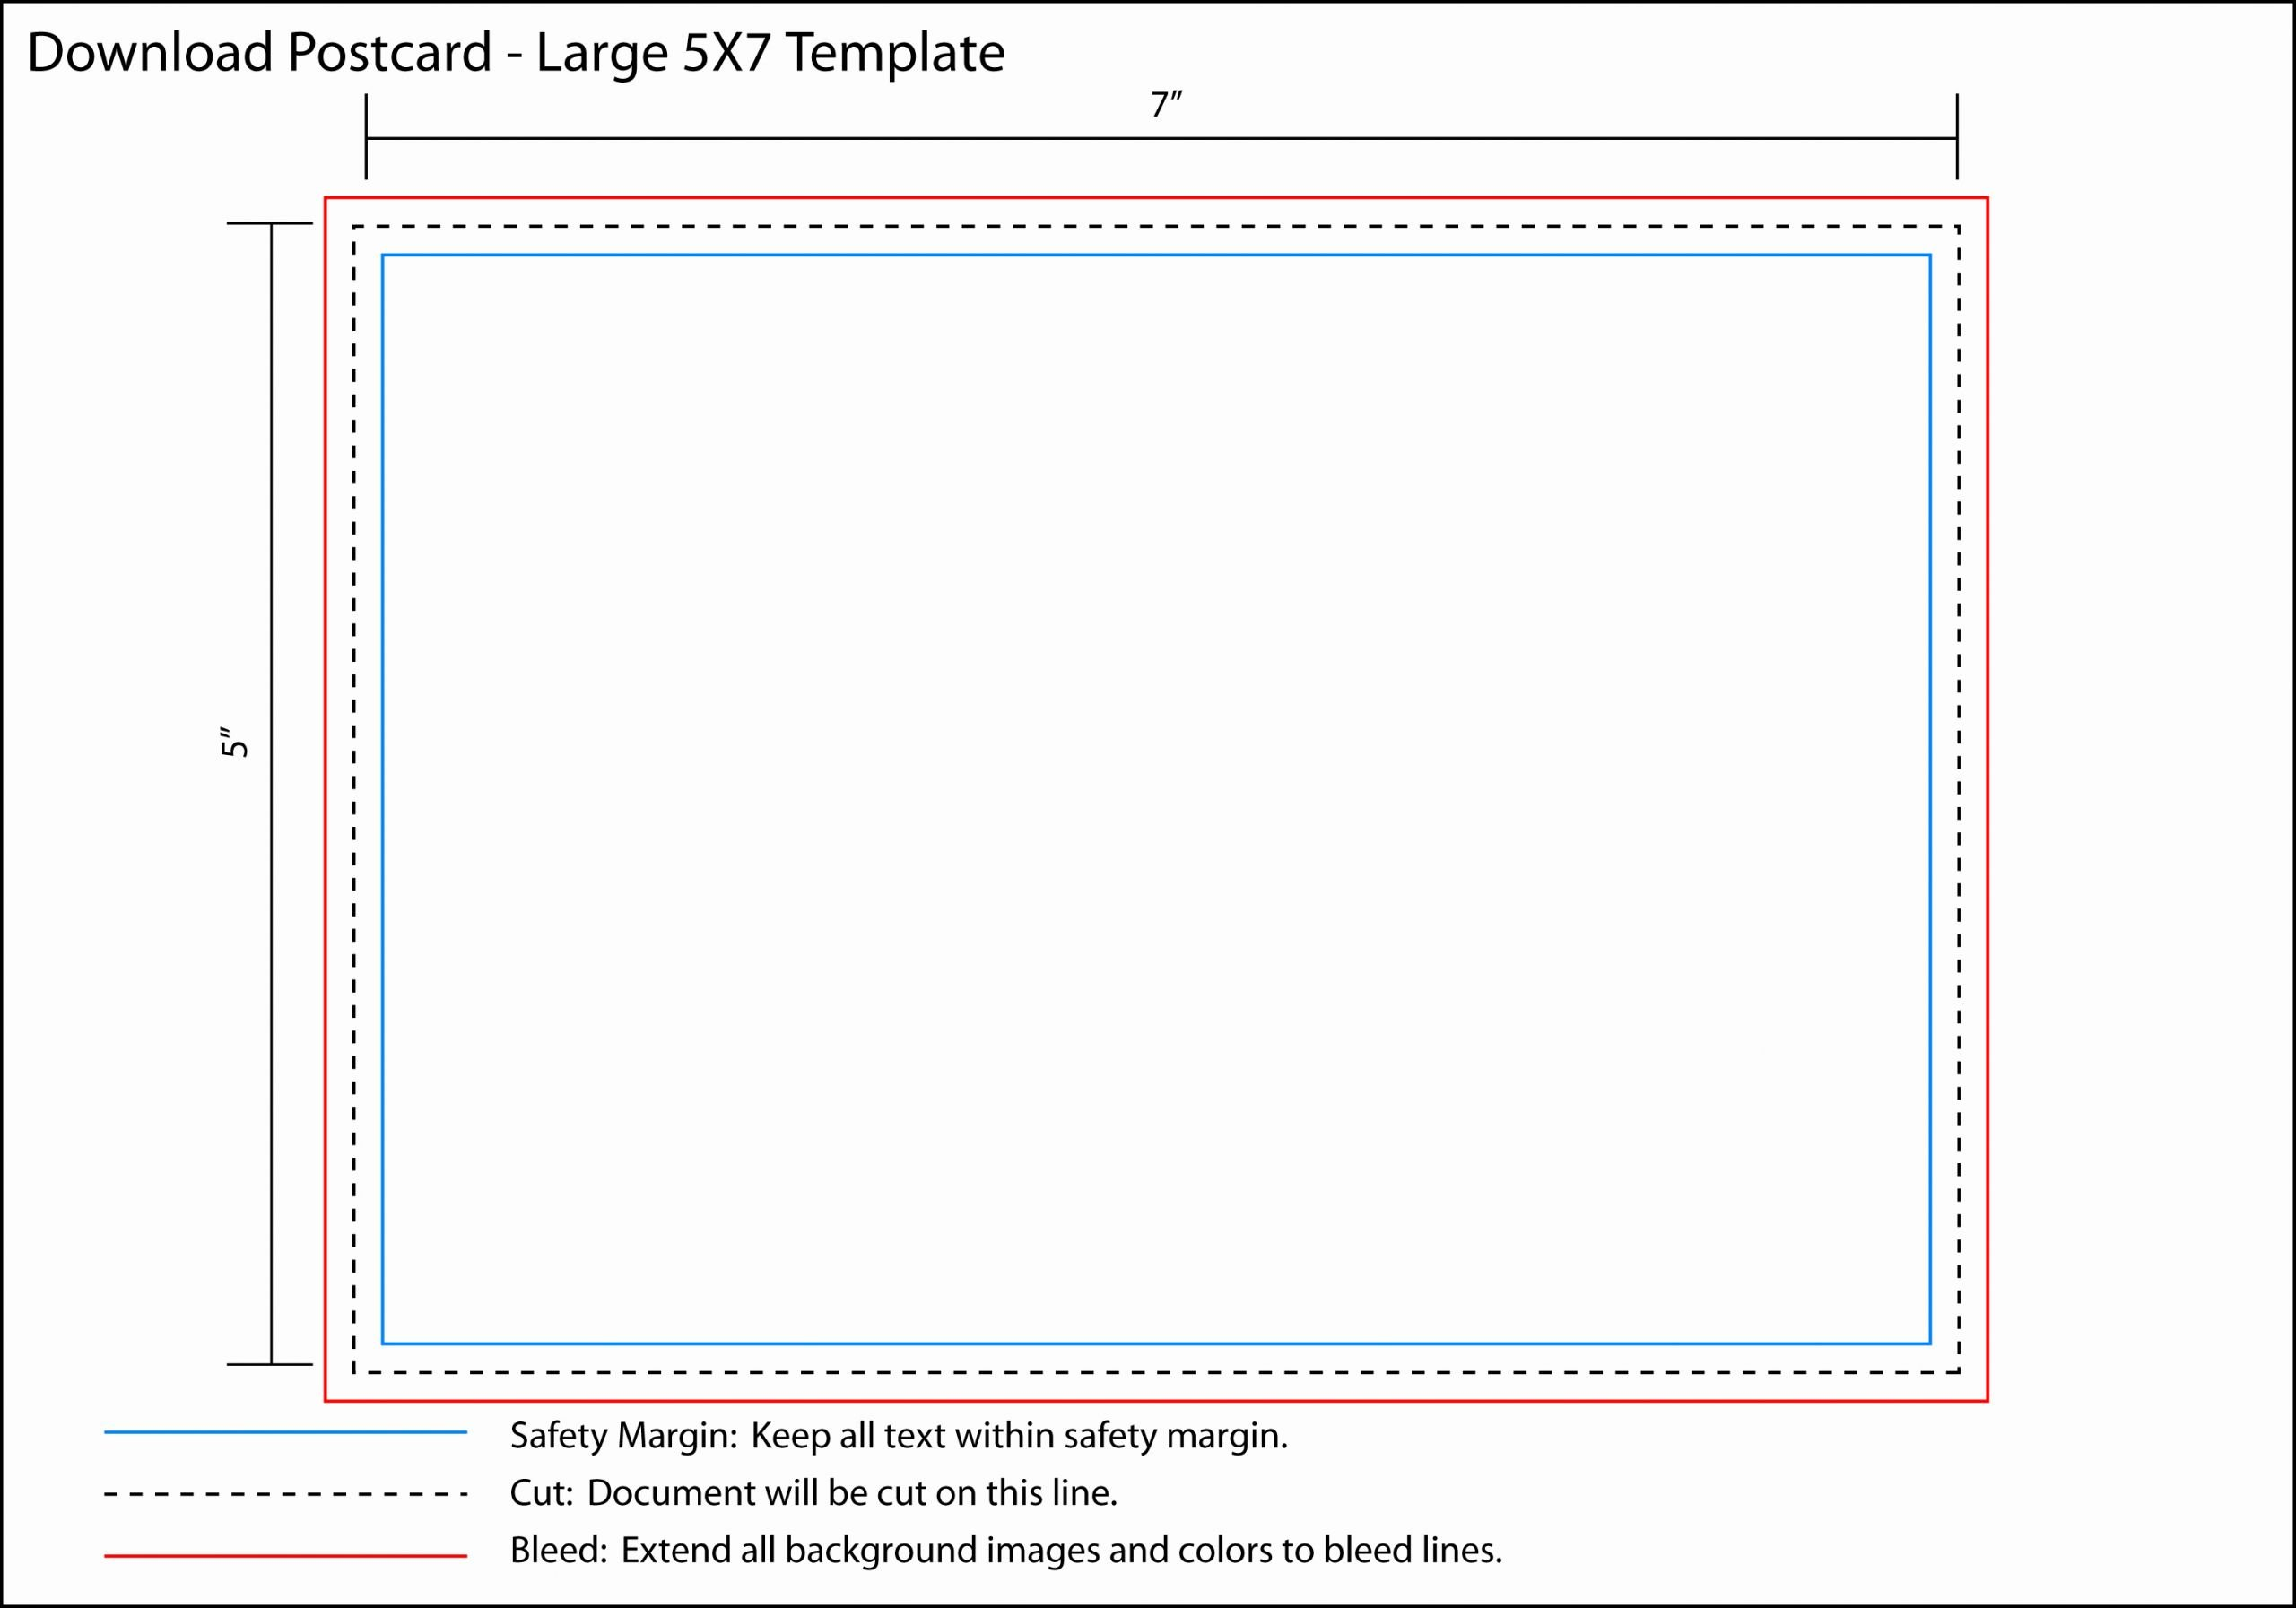 5 X 7 Postcard Template Luxury Superdups Cd & Dvd Duplication and Replication and More